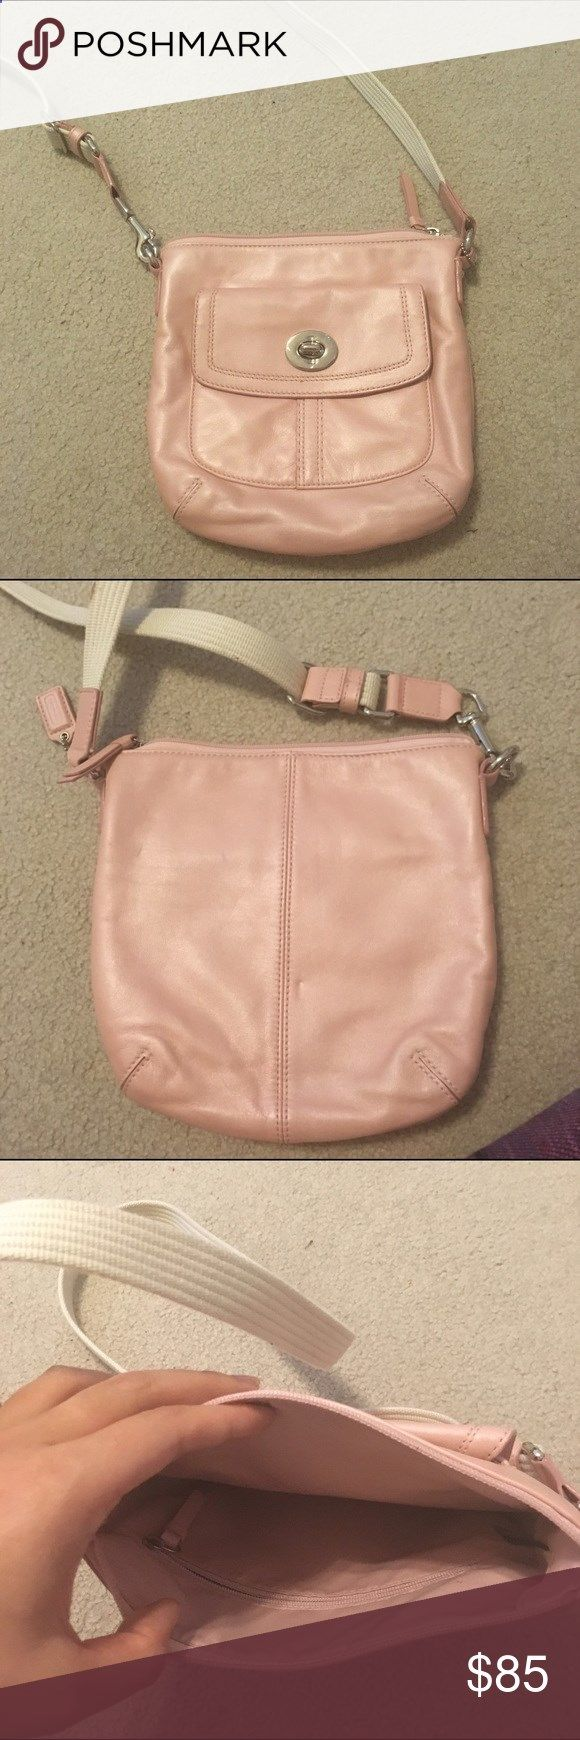 Cute pink coach purse! Over the shoulder coach purse, small stain on handle, used only twice. Excellent condition (besides the small stain). Coach Bags Crossbody Bags